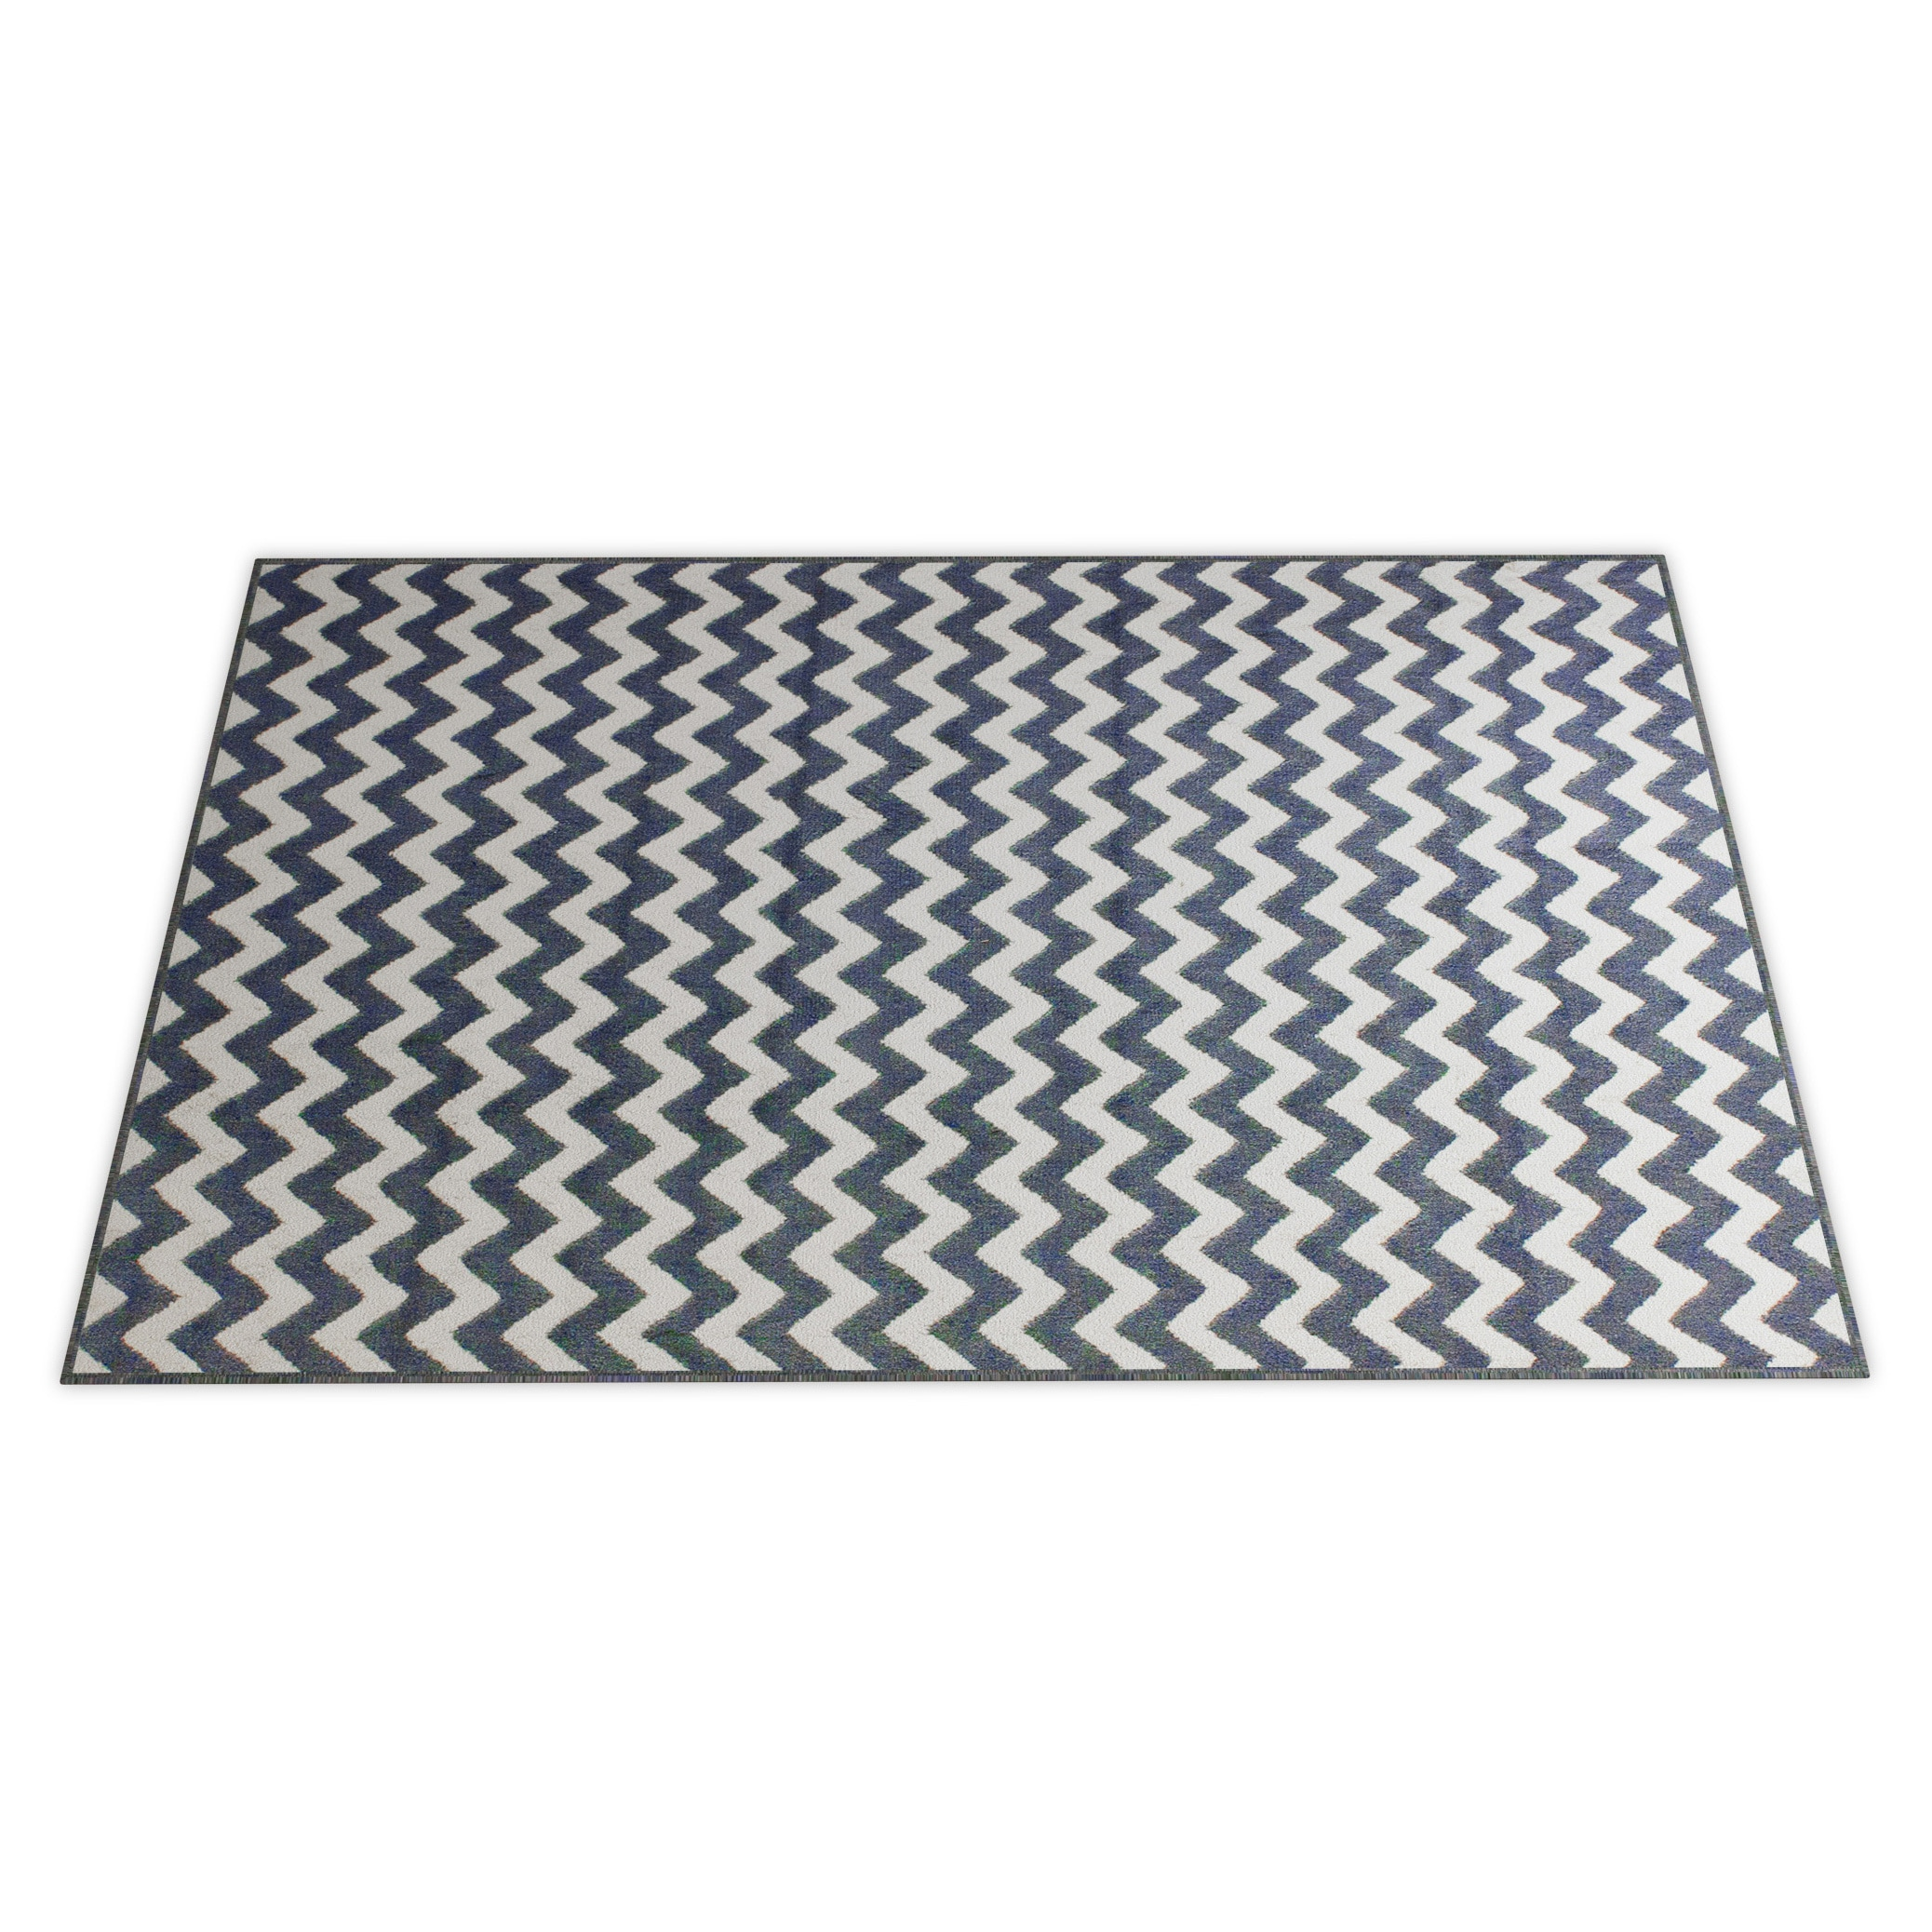 Williamsburg Bedford Chevron Zebra Rug (7'6 x 9'6) - Thumbnail 0